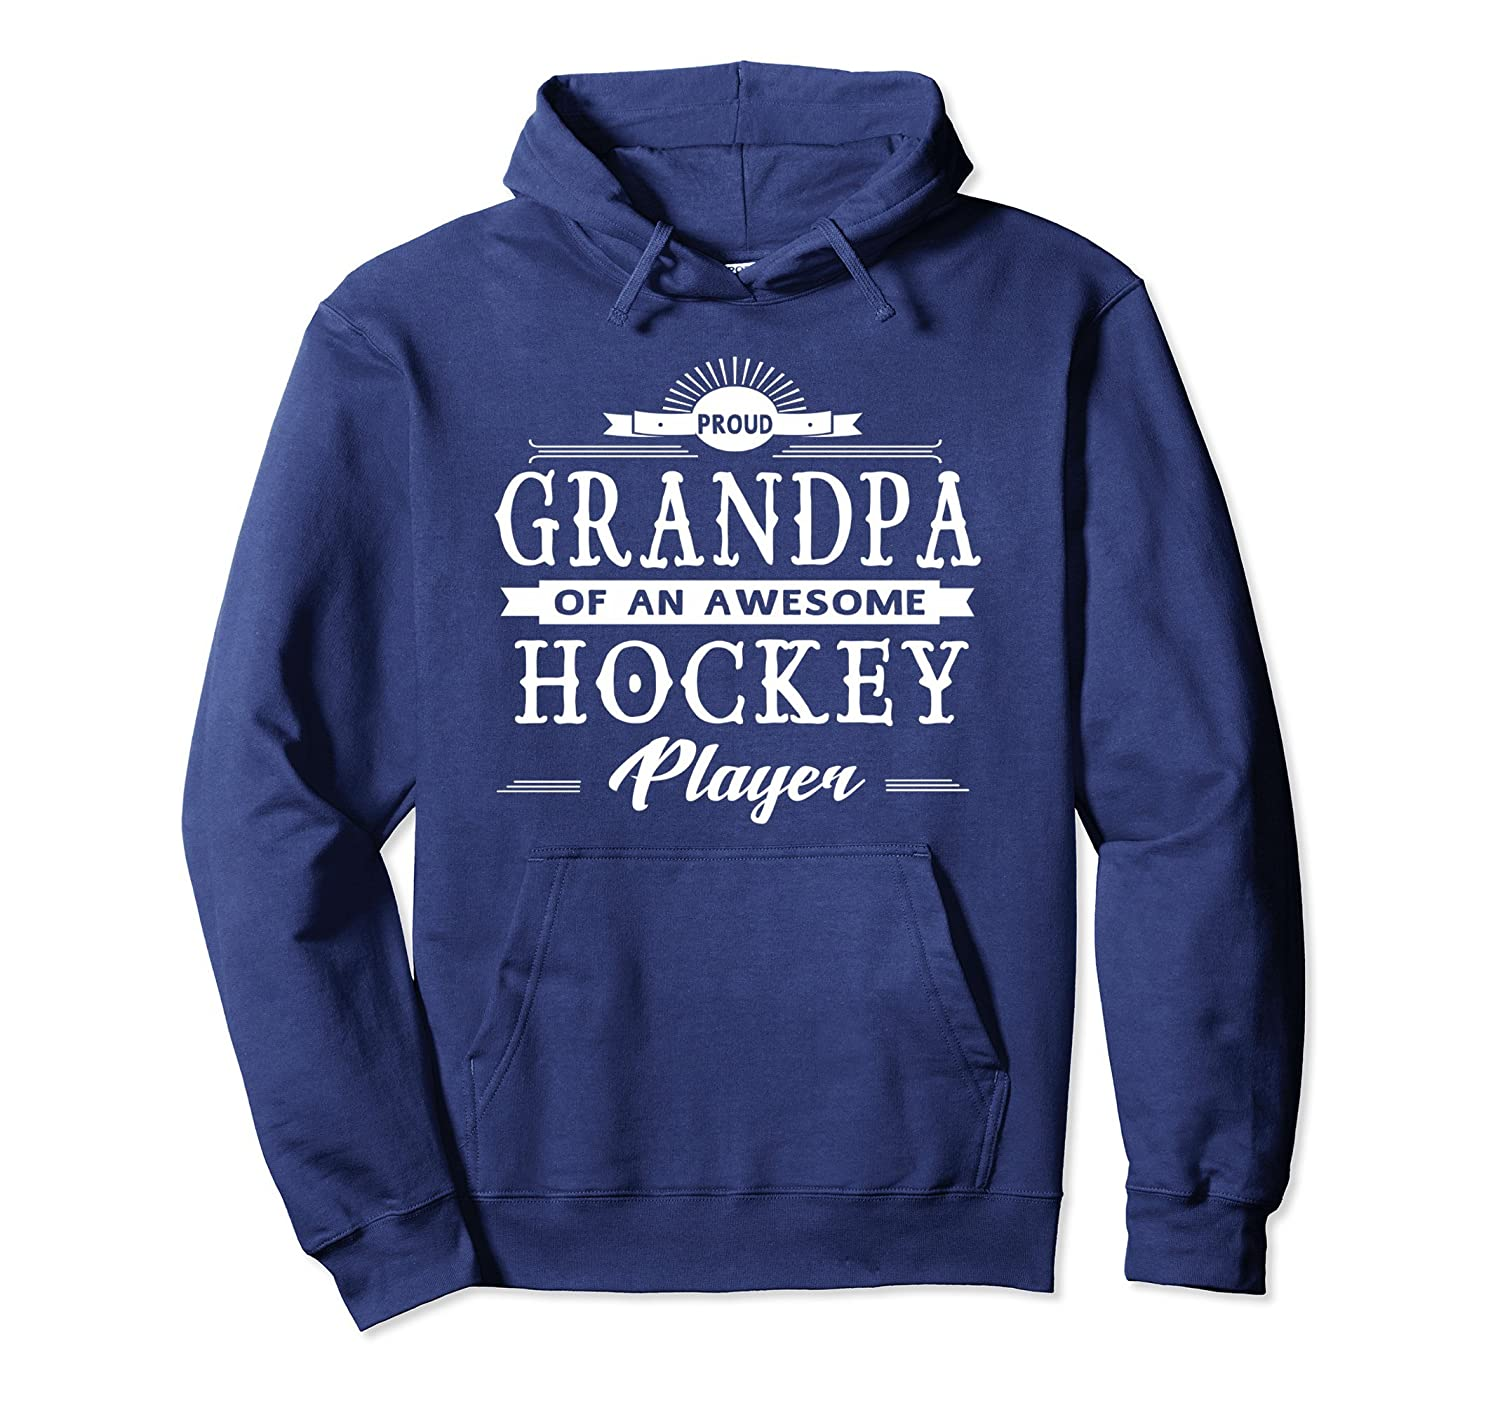 Proud Grandpa OF an Awesome Hockey Player Hoodie-Colonhue